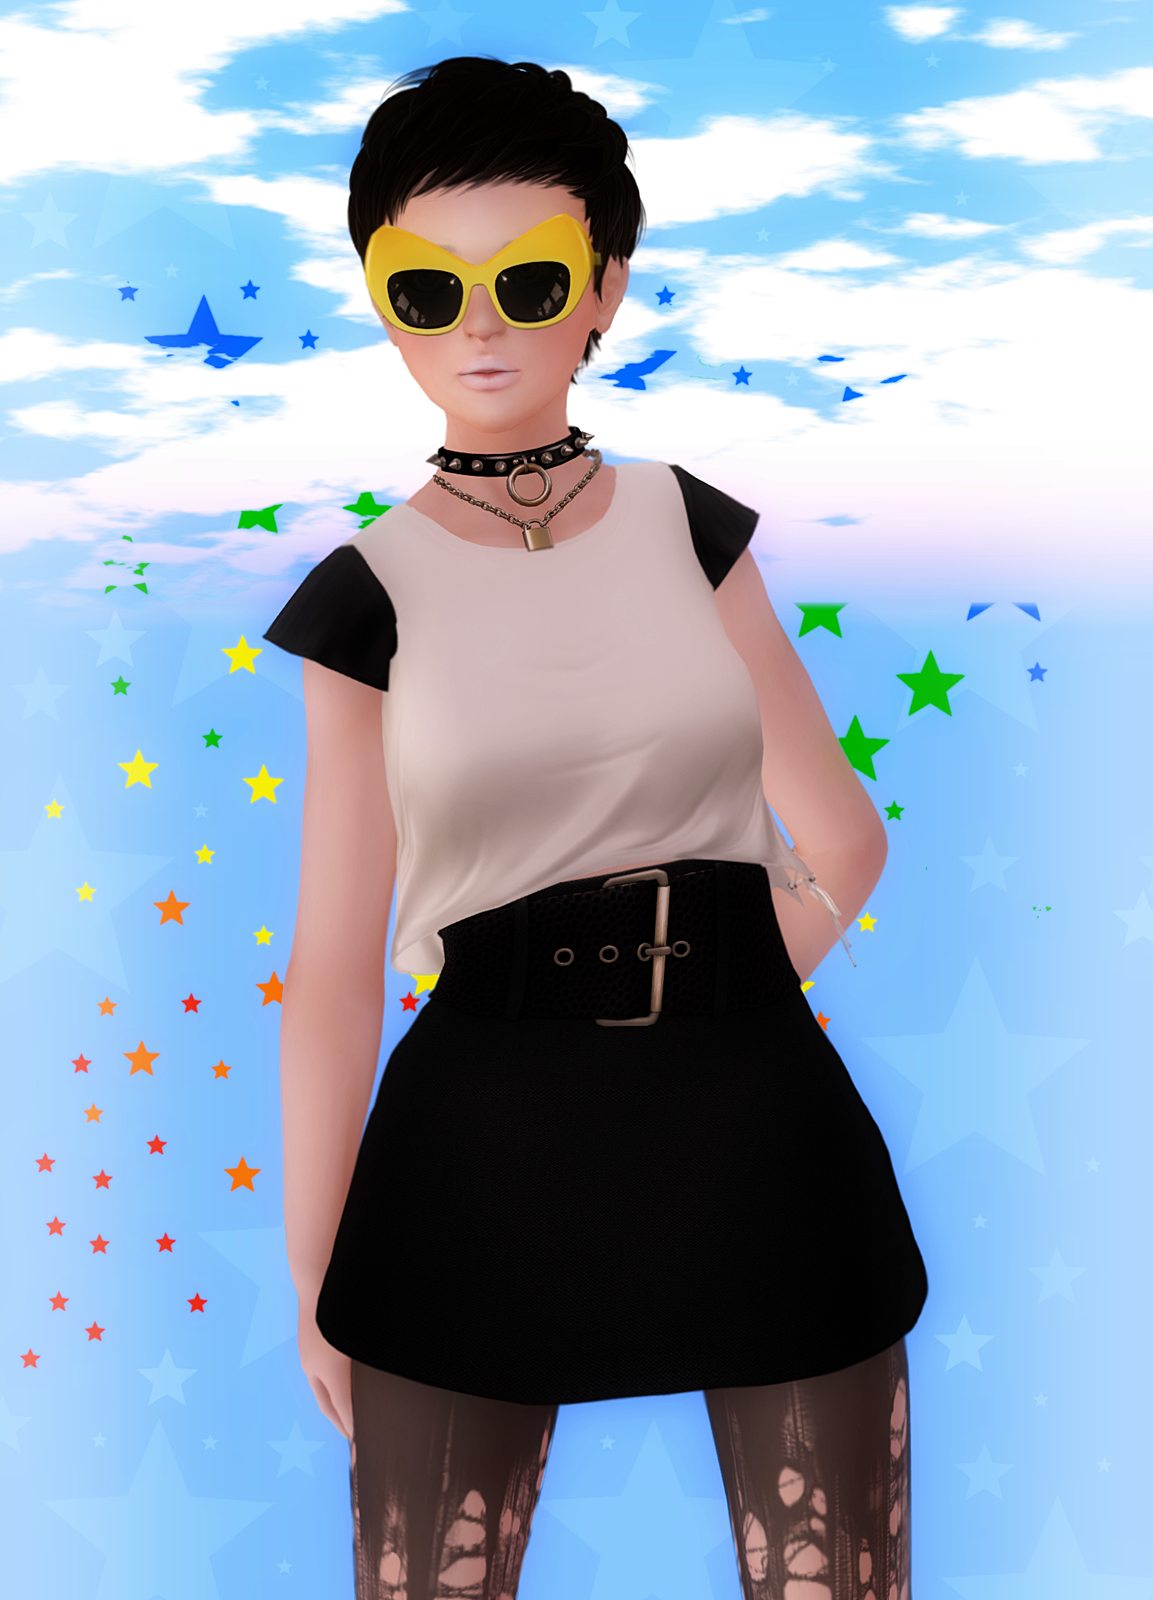 Tdr Feedme Your Daily Serving Of Shopping And Style For Jacket Sunglasses Le Primitif Fusion 70l Skin Texture Utilizator Av Only Free 5l Pose Marukin Necklace Yummy Collabor88 Read The Rest